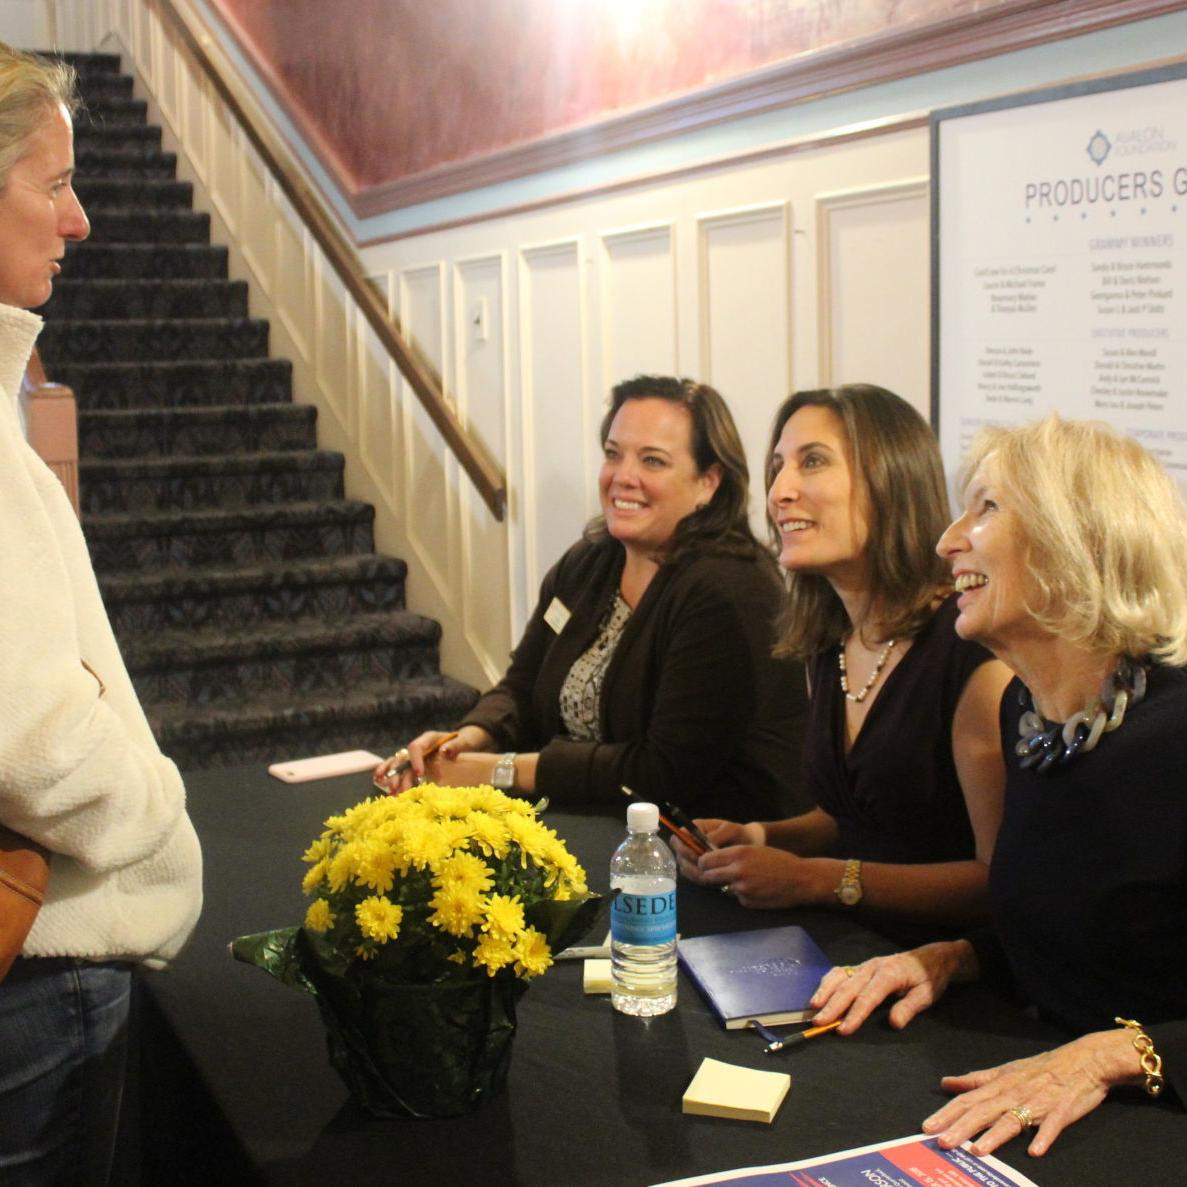 Women and Girls Fund welcomes author Rosalind Wiseman to Easton